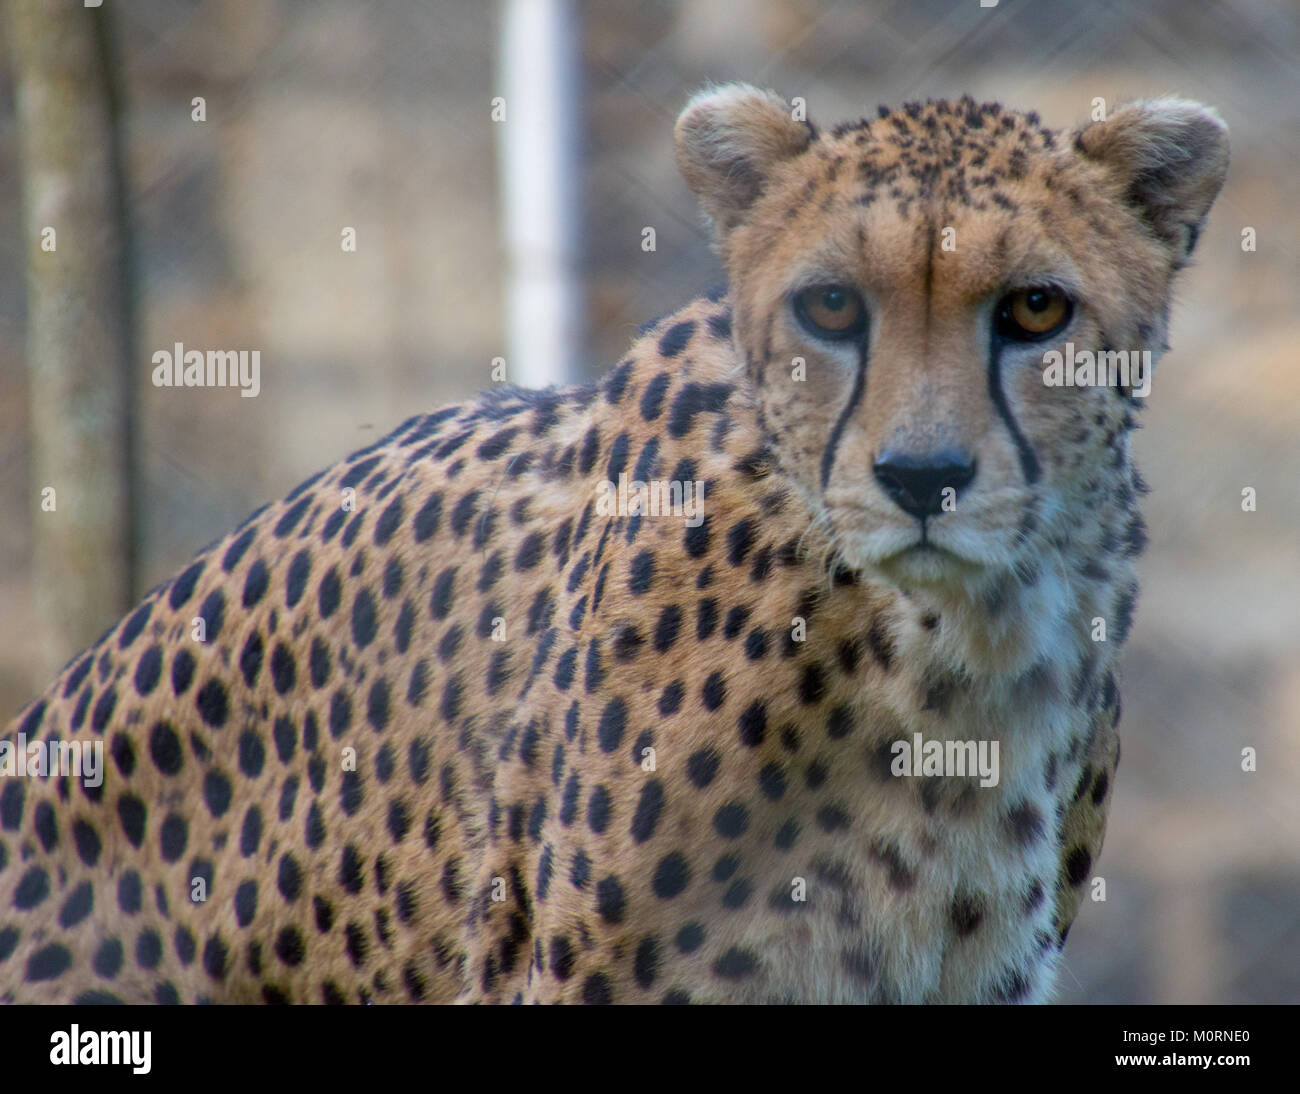 A close up with a Cheetah - Stock Image